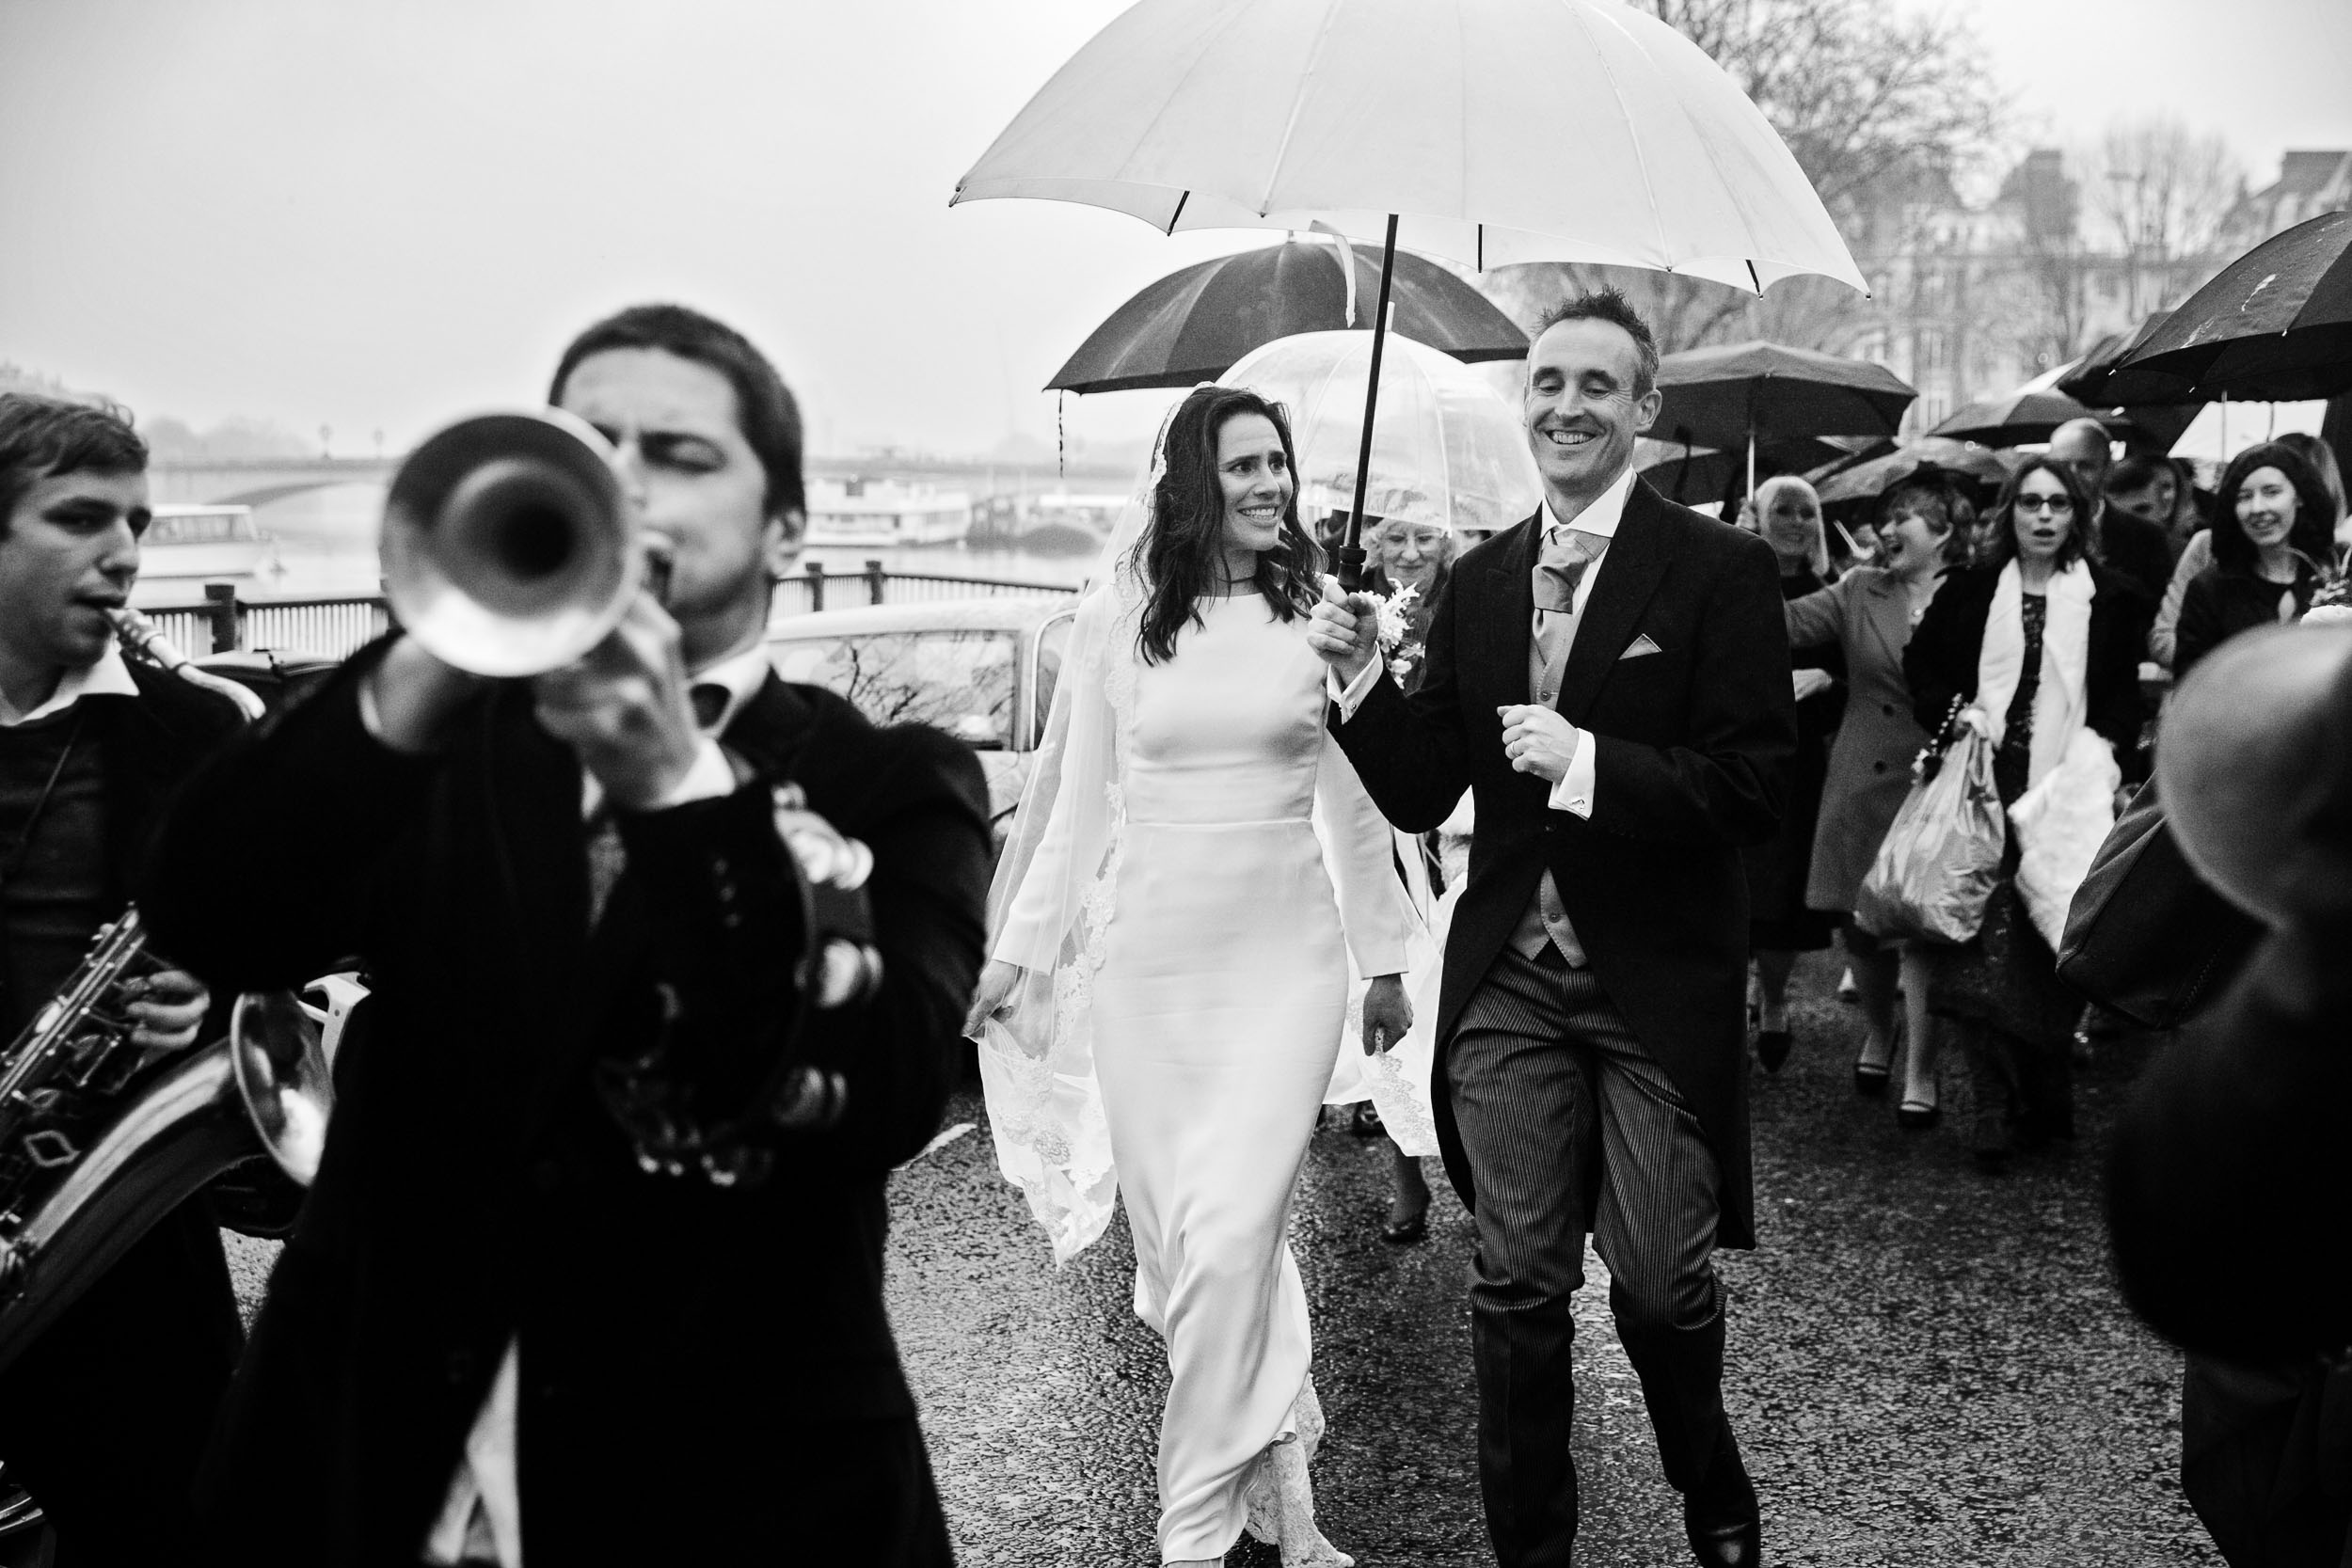 st-martin-in-the-field-wedding-photographer-london 093.jpg